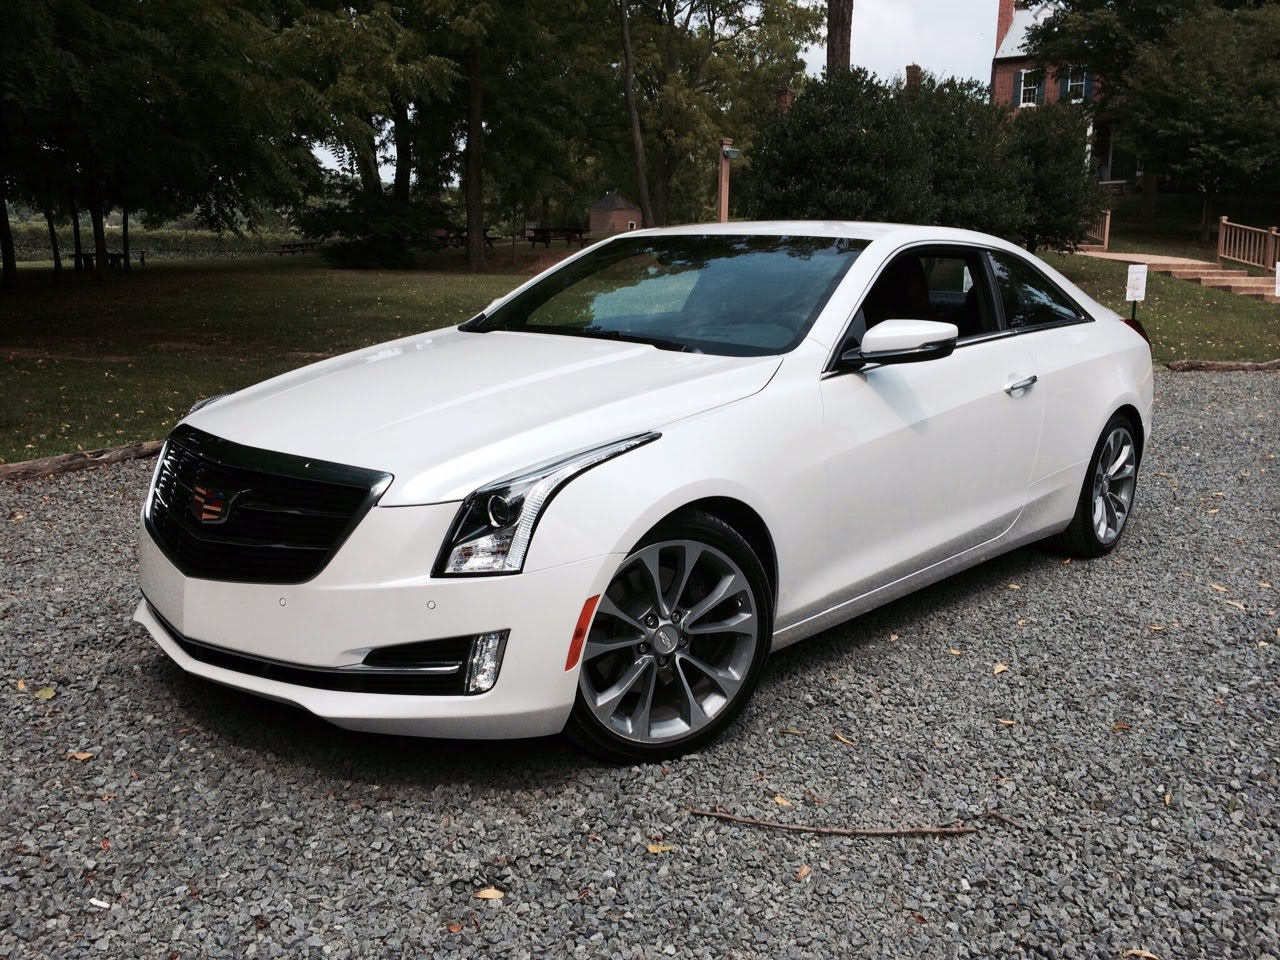 2015 cadillac ats coupe information and photos zombiedrive. Black Bedroom Furniture Sets. Home Design Ideas